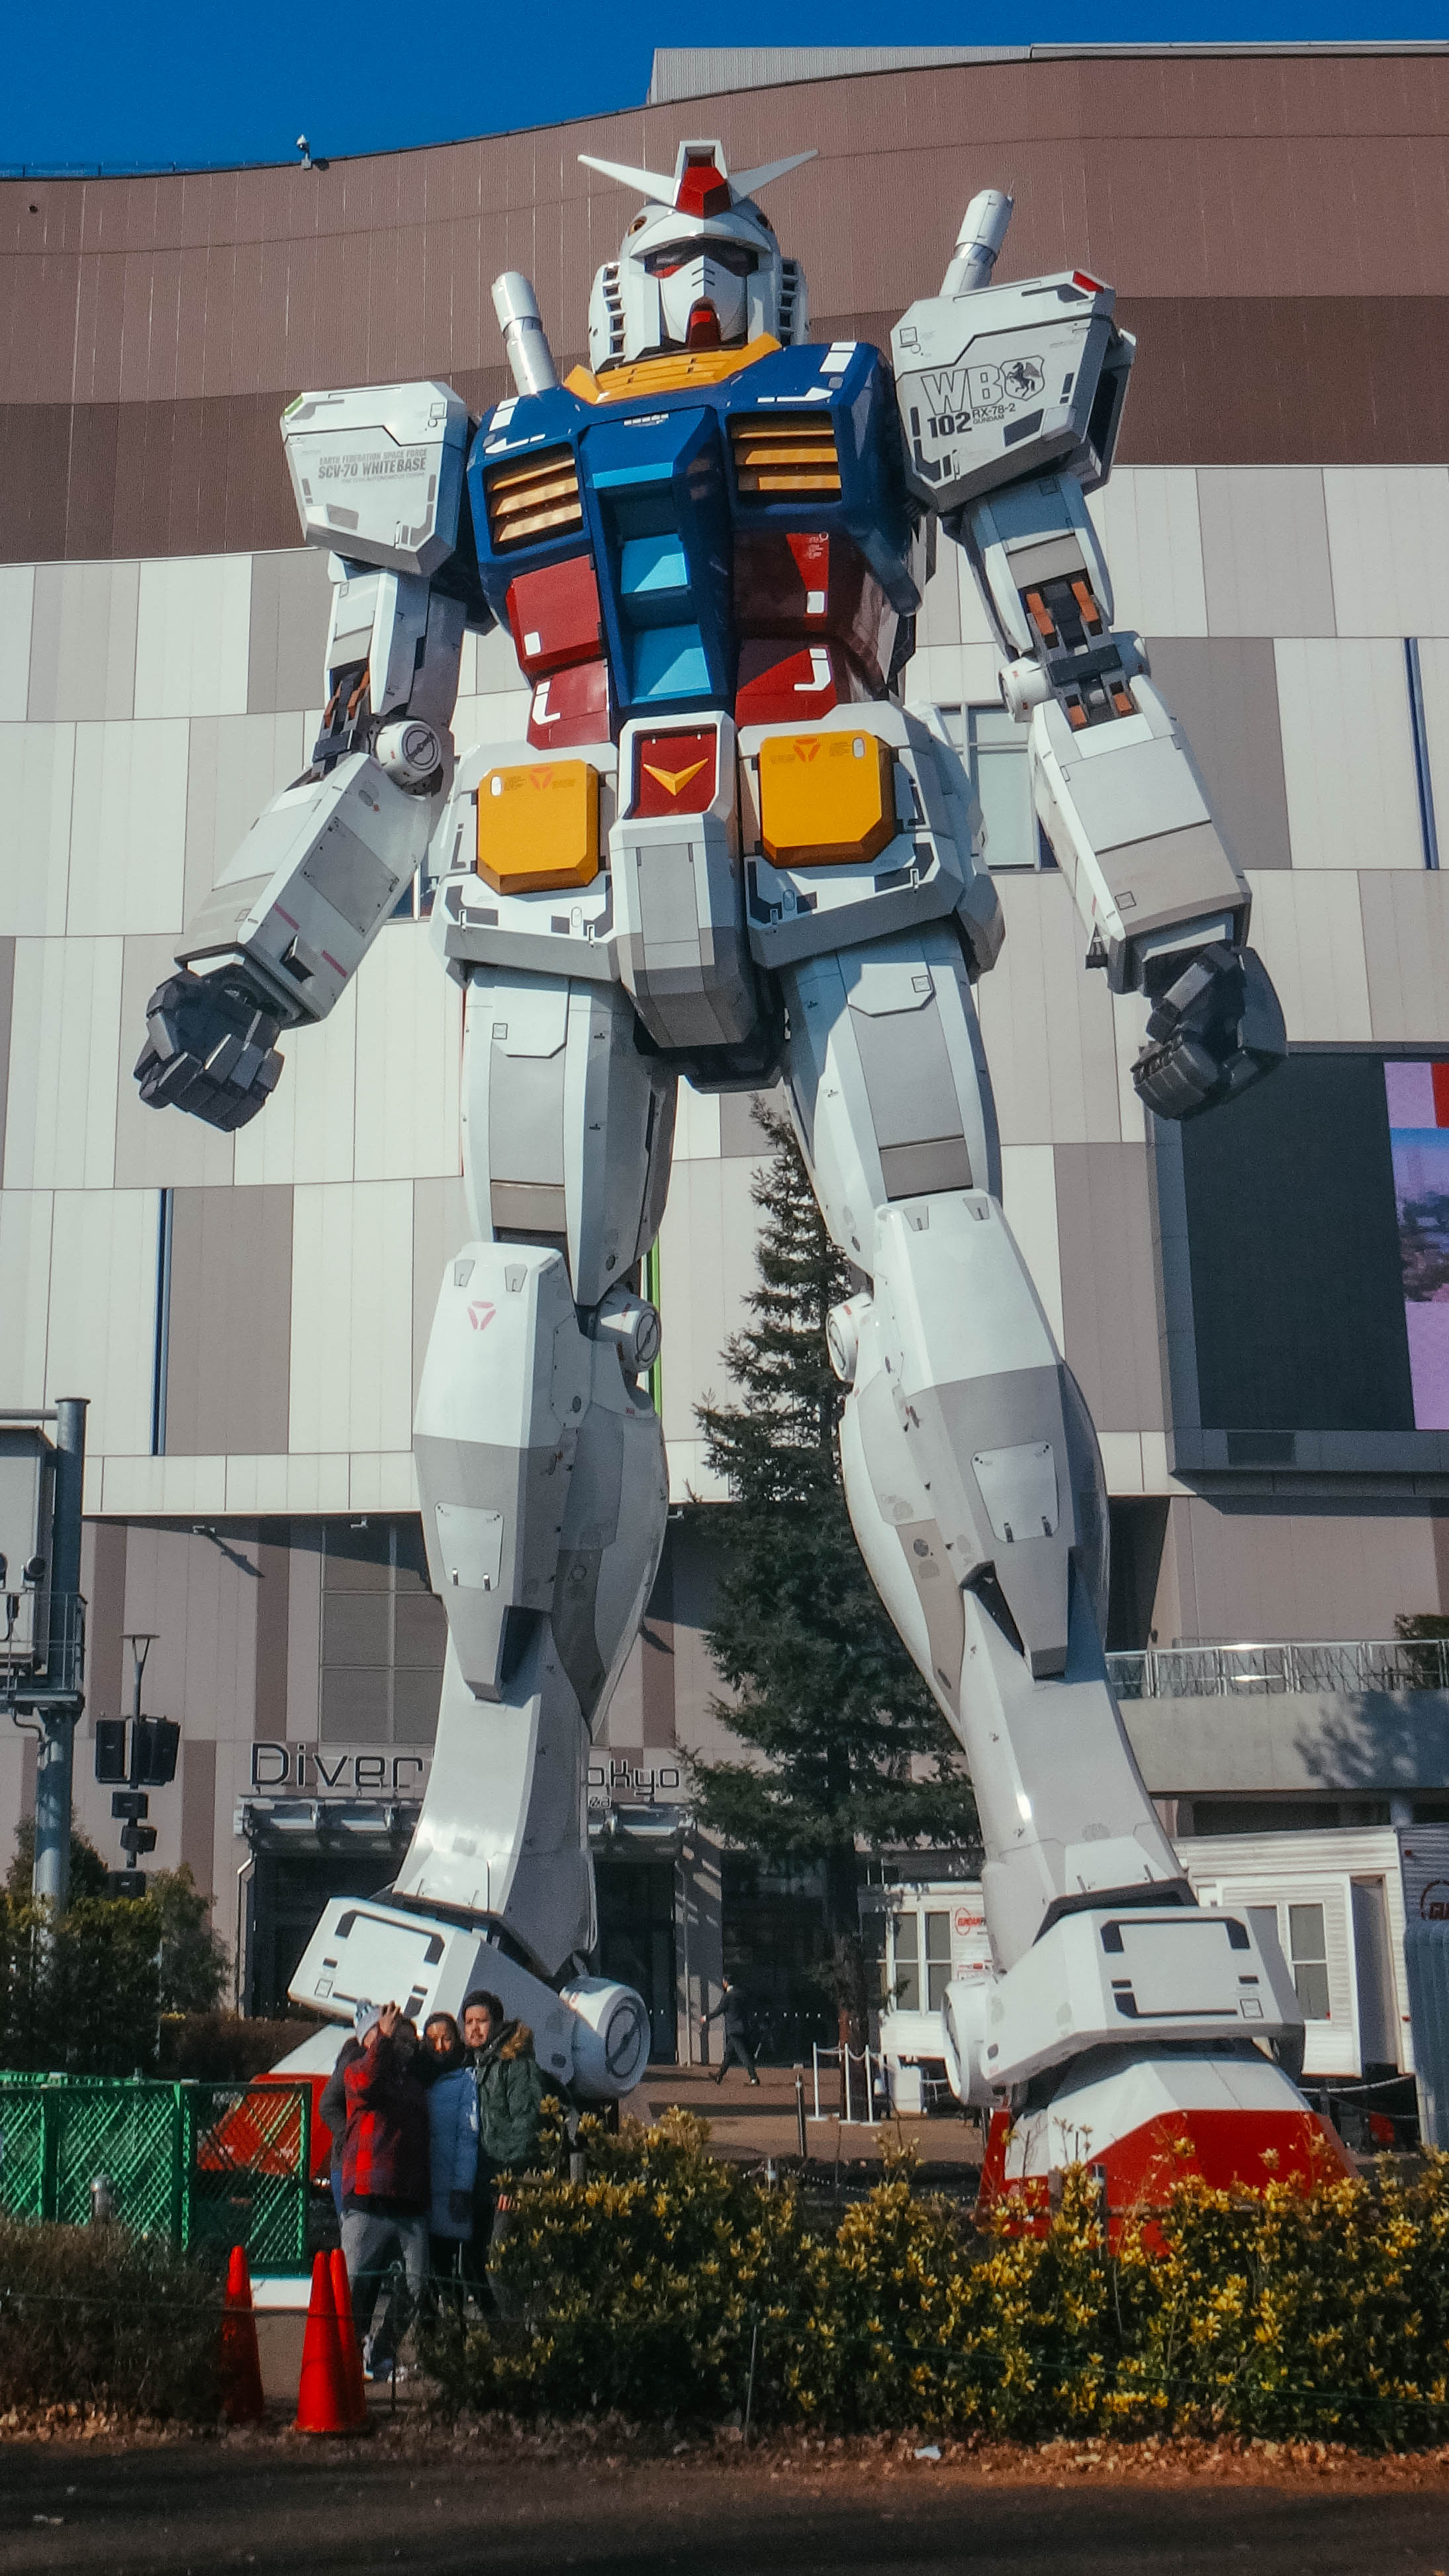 GUNDAM. A huge Gundam stands sentry at Diver City Tokyo Plaza. Photo provided by Irene Maligat